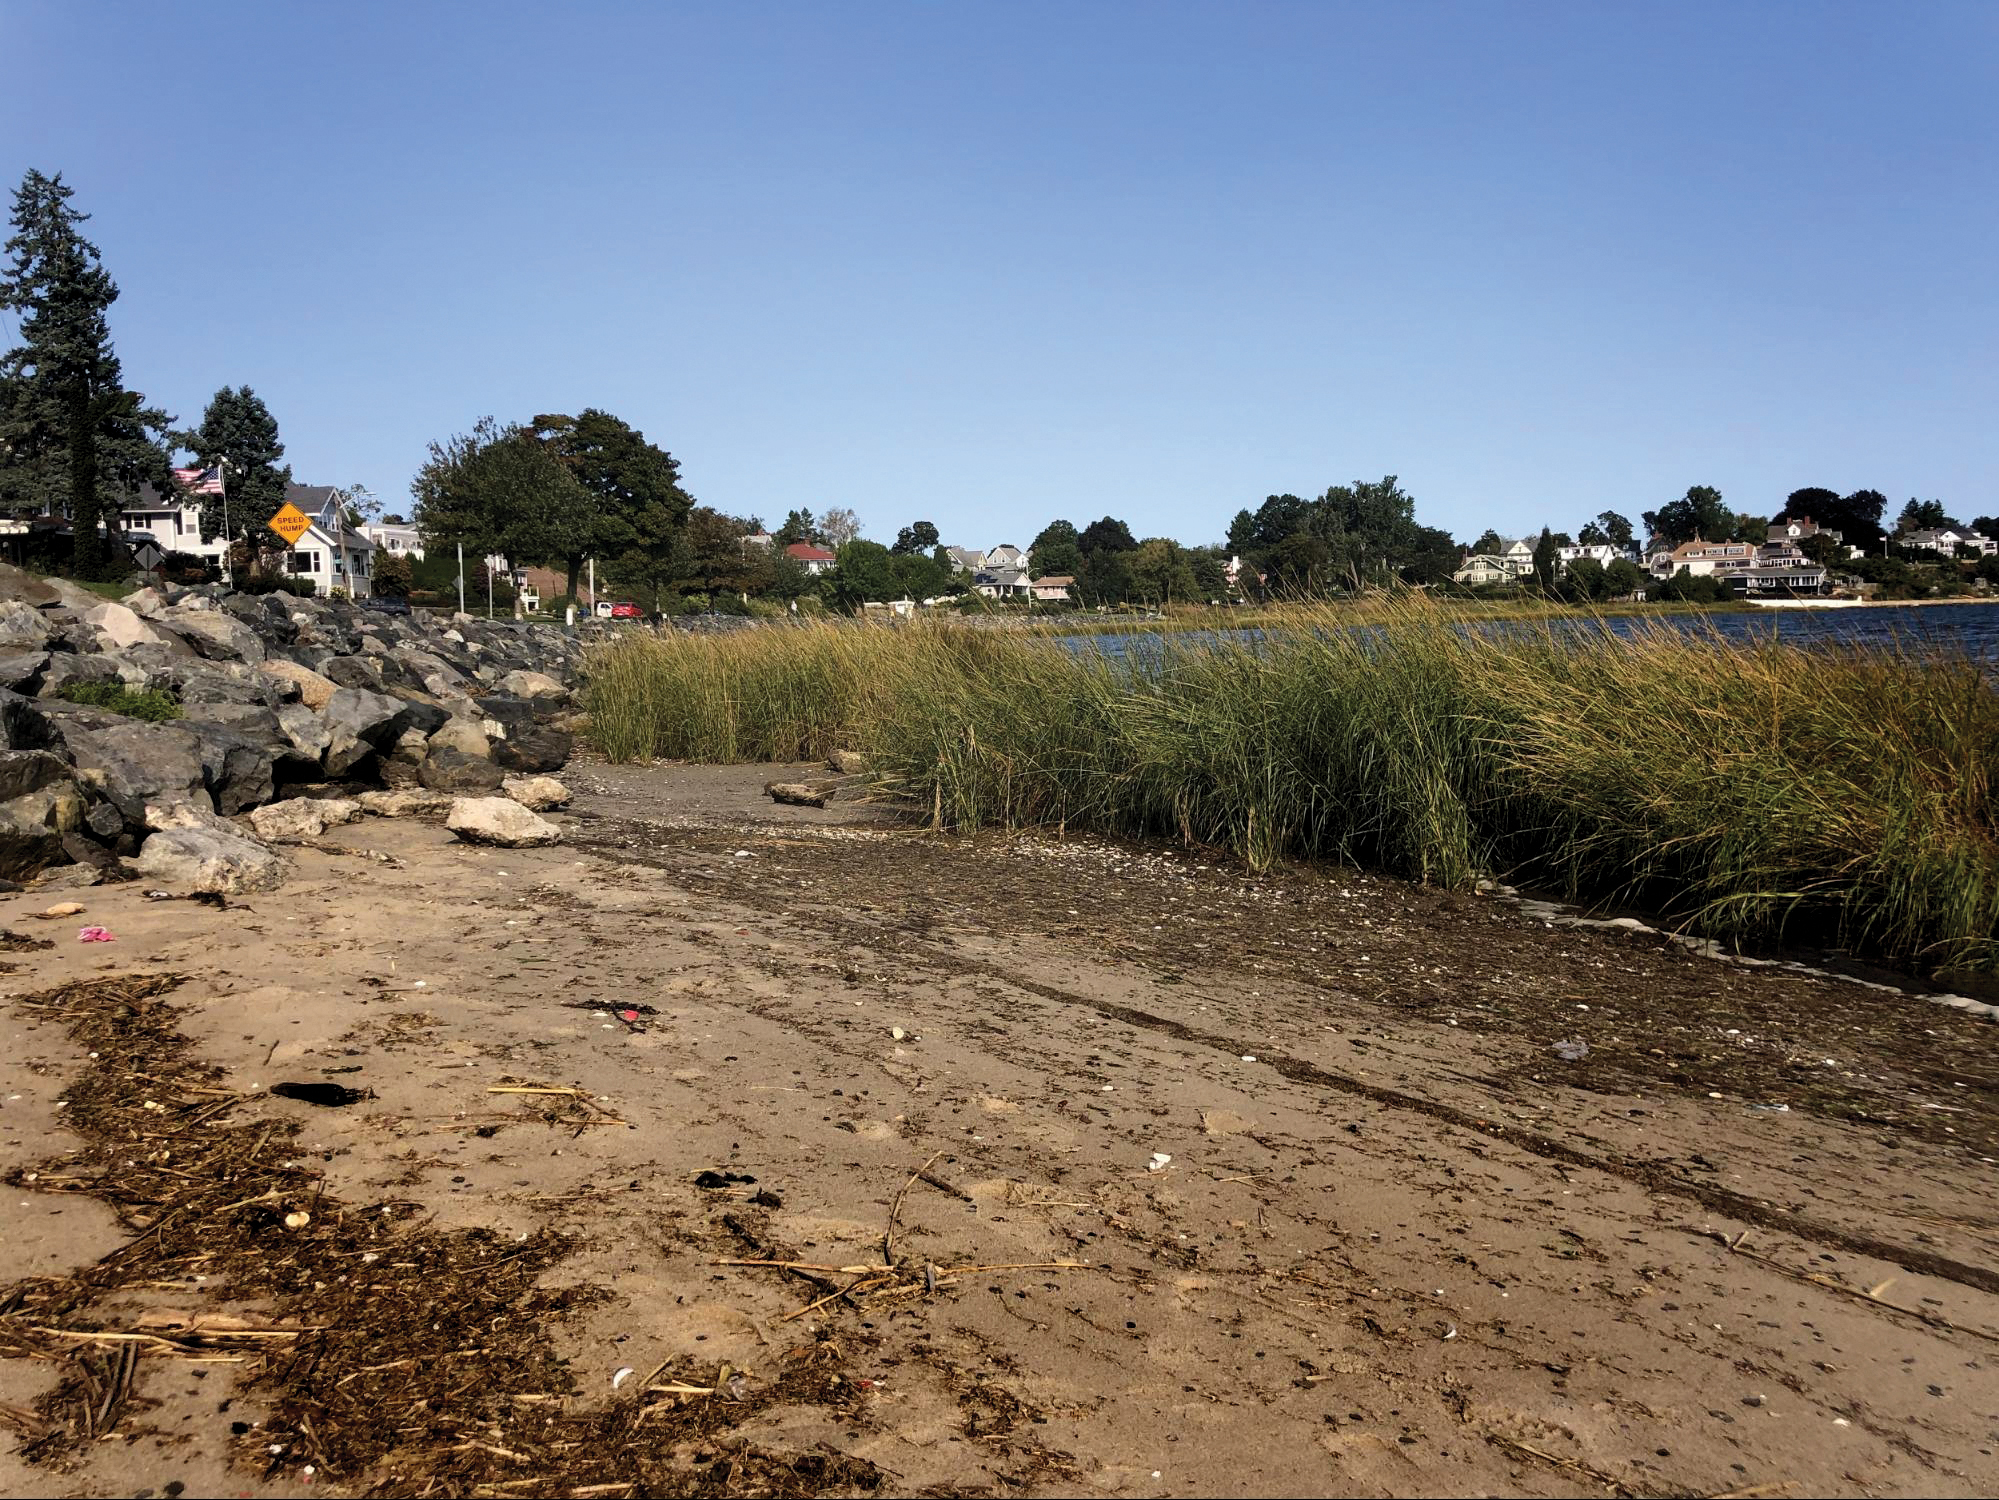 Walls and roads collide with an eroding beach in Stillhouse Cove, depleting horseshoe crab spawning habitat.